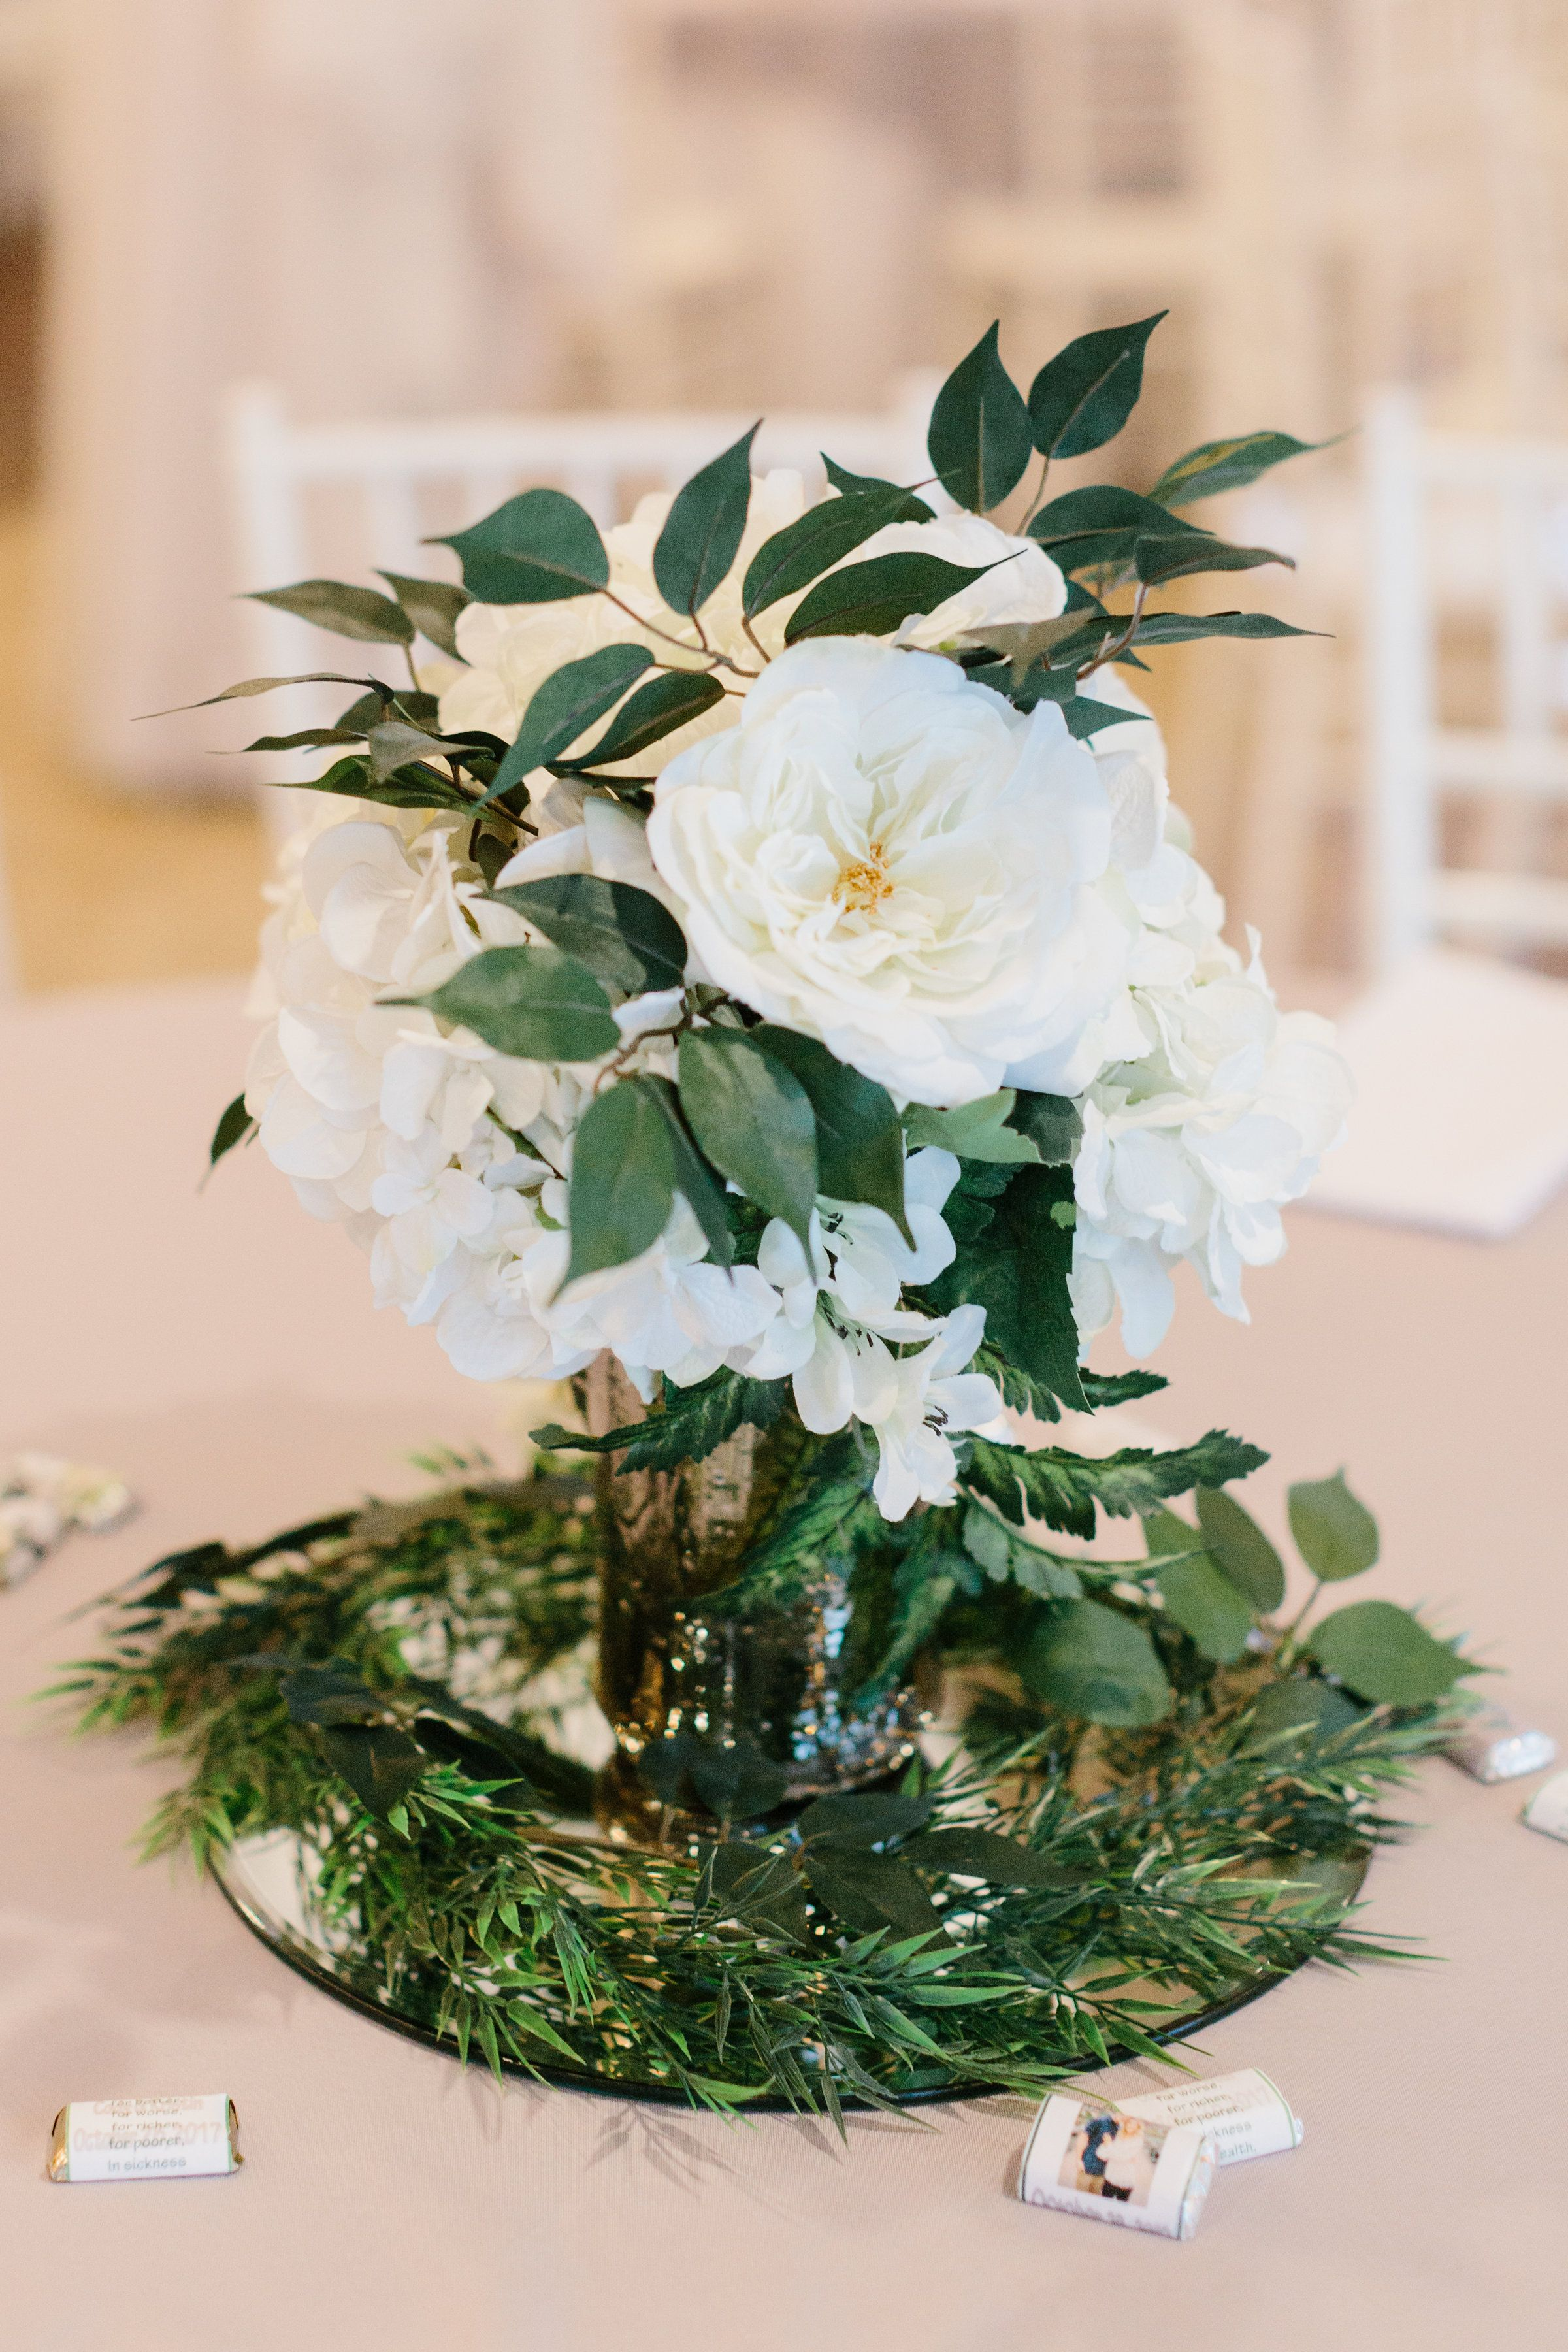 White Flower And Greenery Wedding Reception Centerpiece Central Arkansas Floral